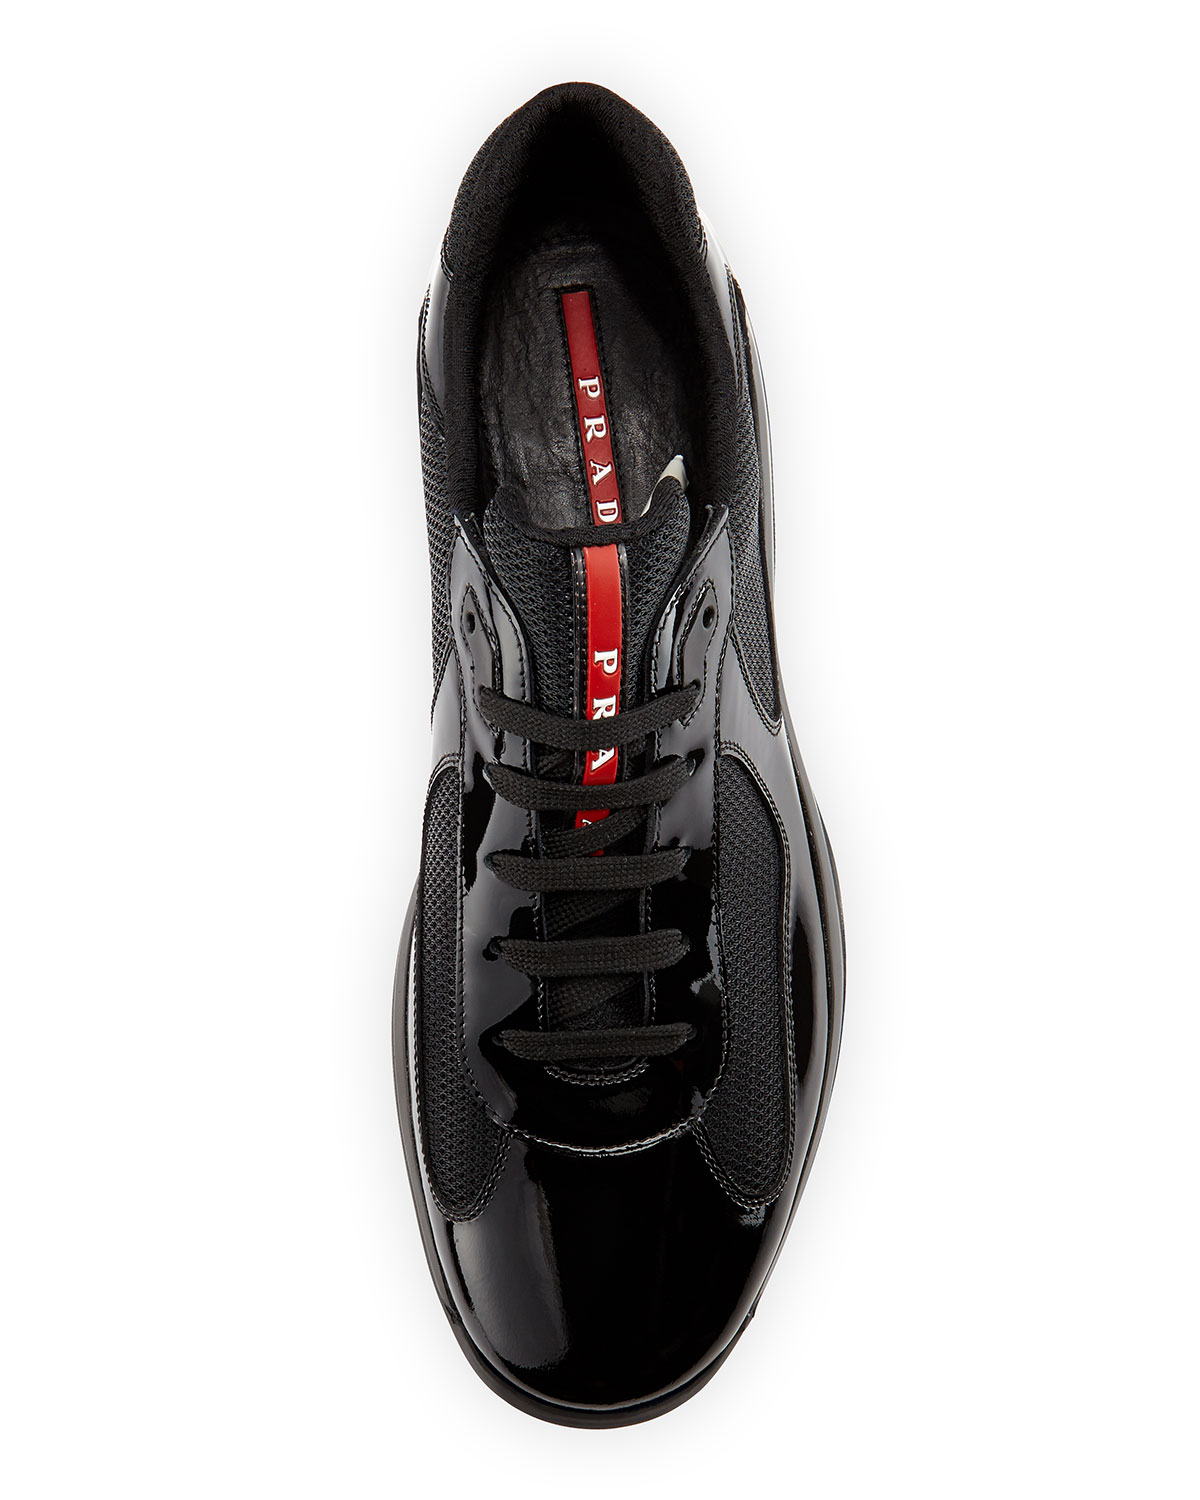 a4b2fe02780 Prada Linea Rossa Americas Cup Patent Leather Sneaker in Black for ...